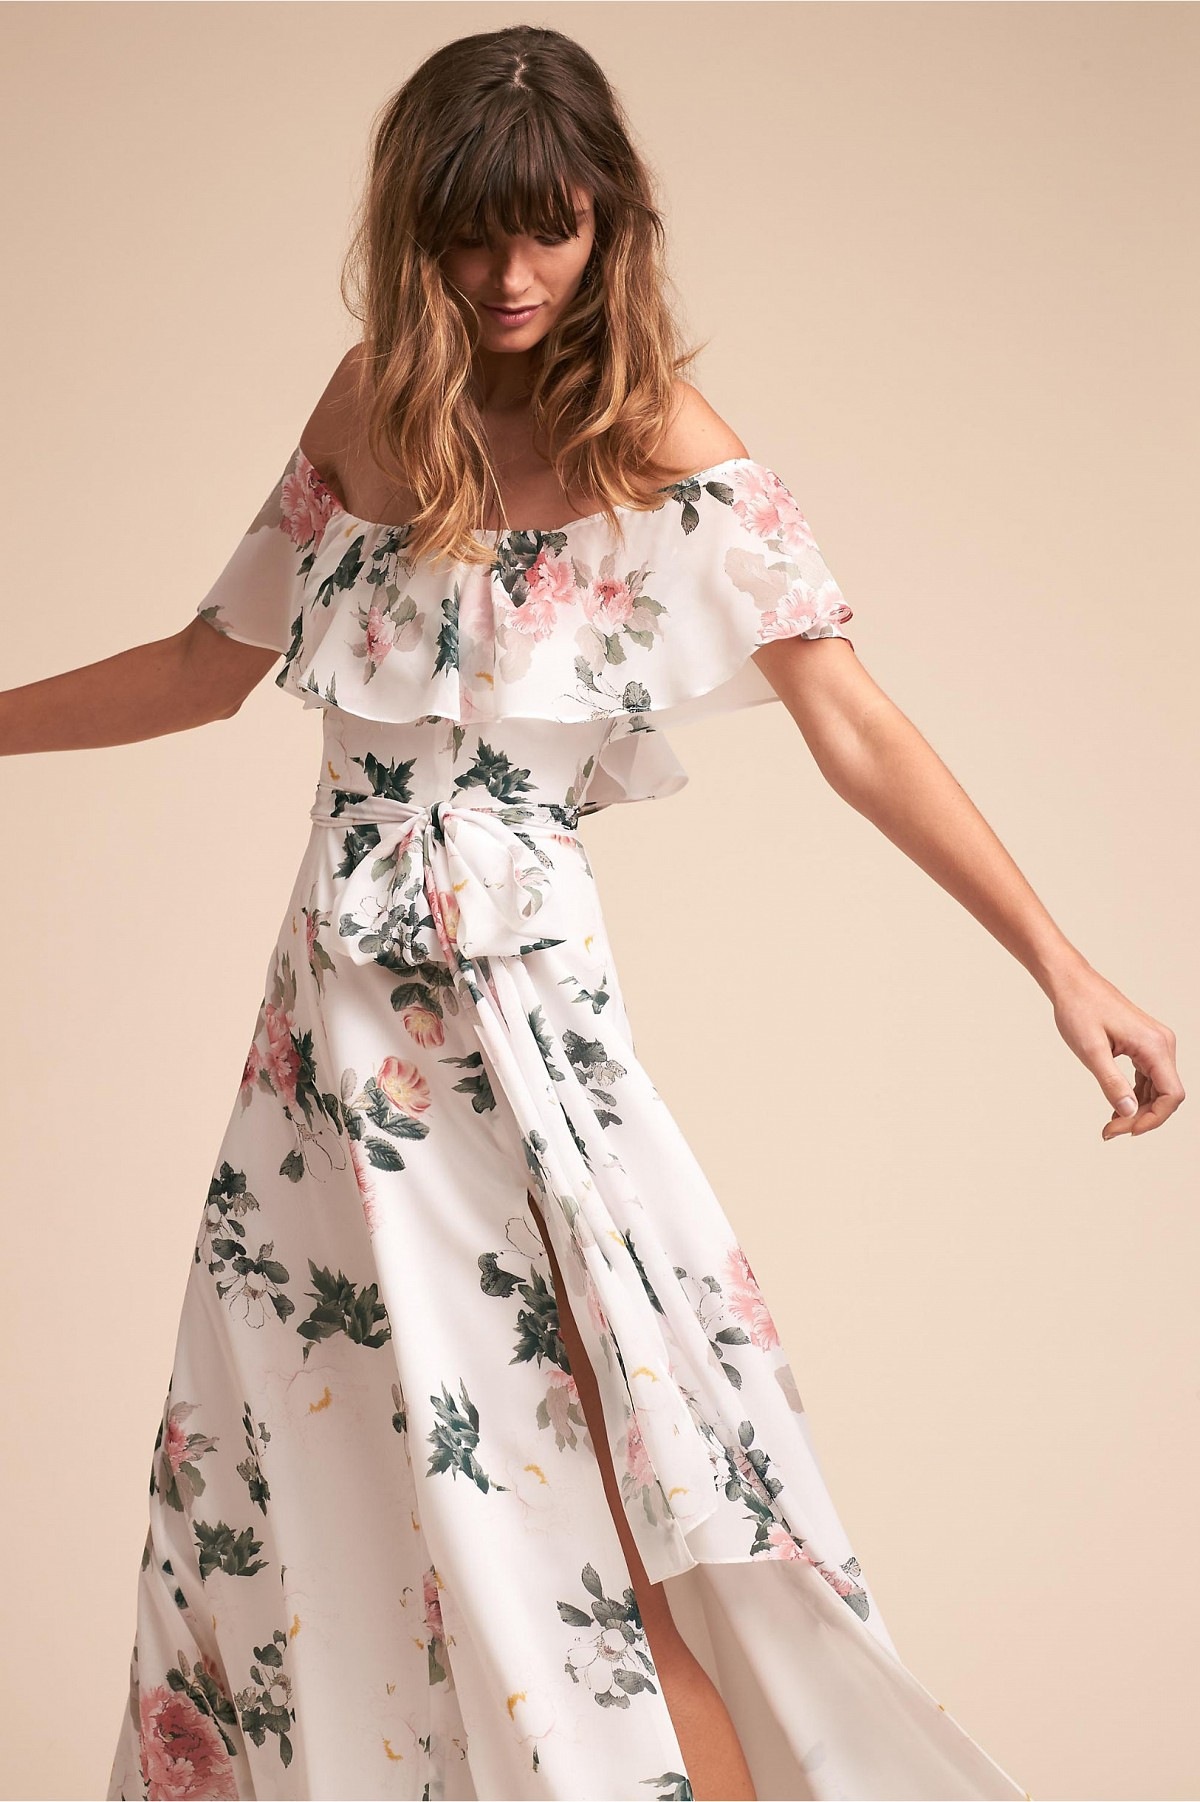 Bridesmaid dresses by season: spring, summer, fall, and winter favorites | Wedding Sparrow